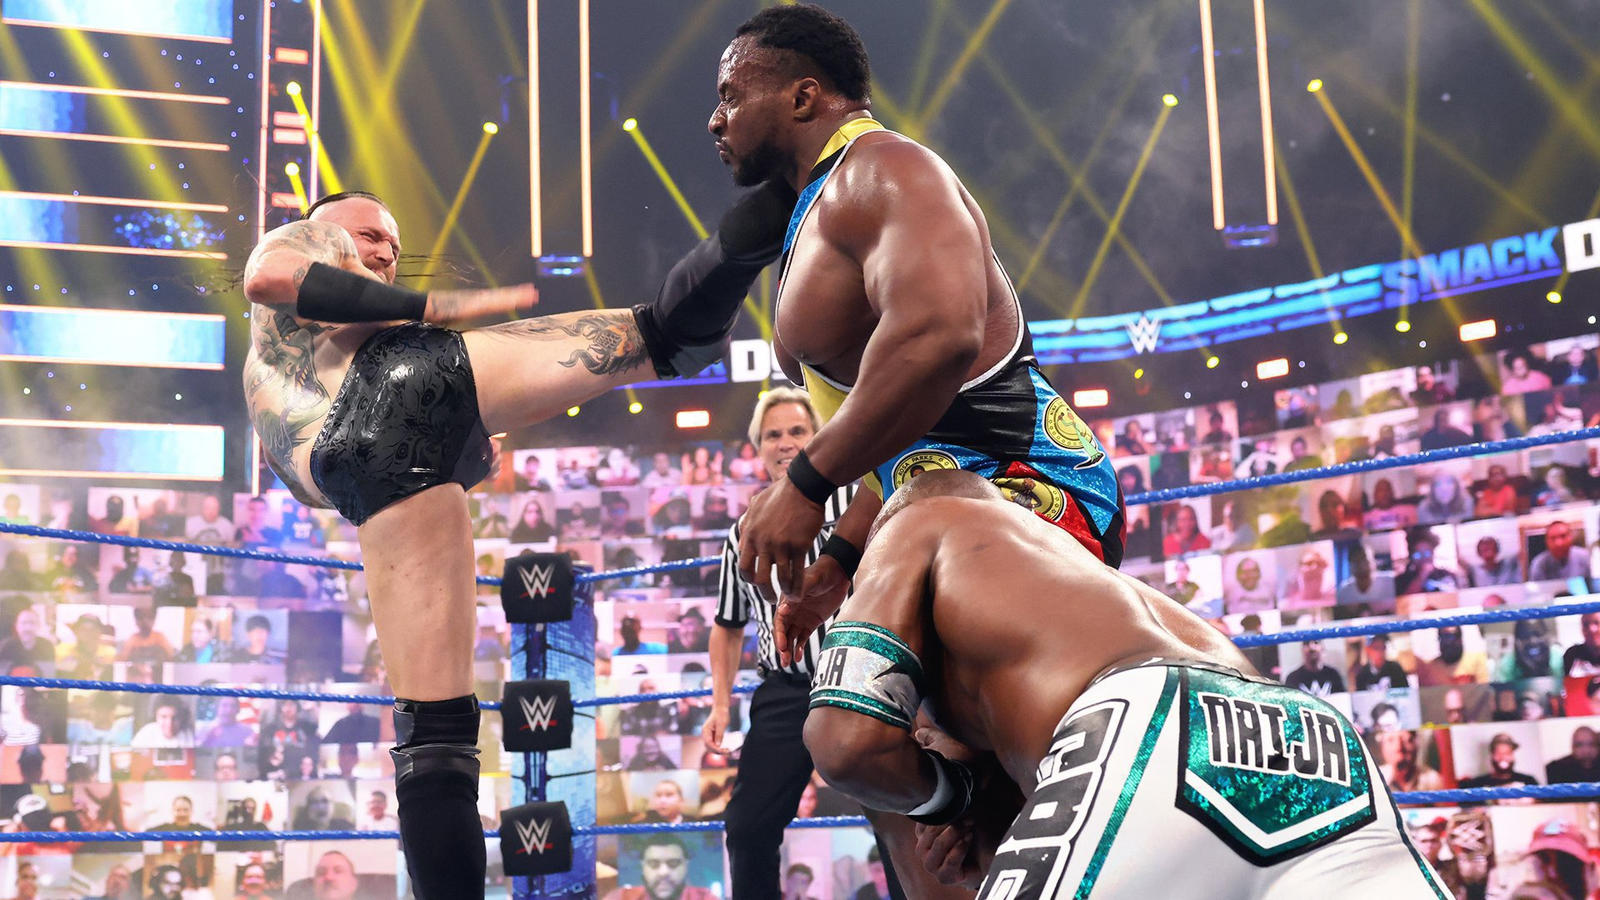 WWE Smackdown Preview (28/05/21): The Usos In Action; Hell In A Cell Builds 108